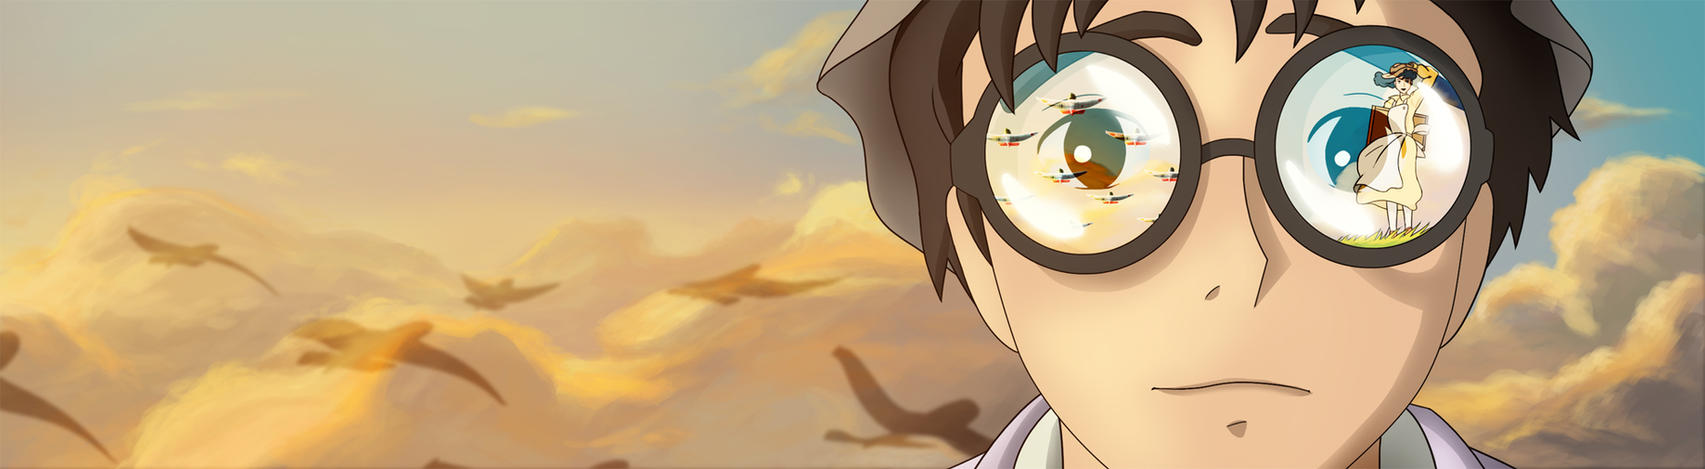 The Wind Rises By Goombac